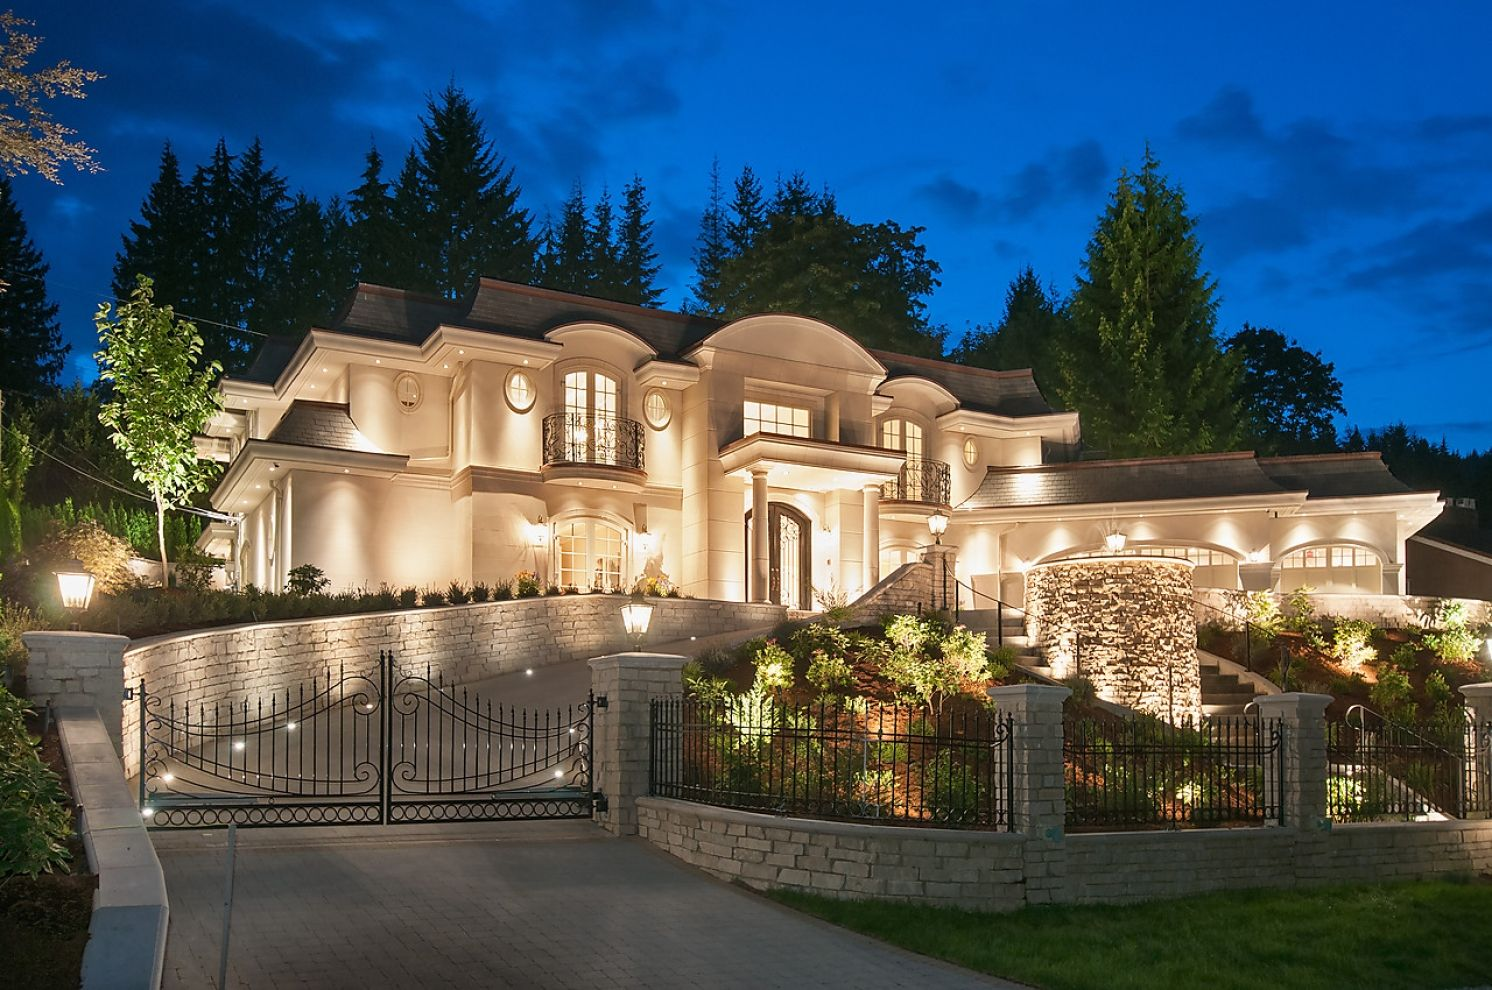 West Vancouver Homes For Sale 397 Southborough Drive British Properties West Vancouver Bc Canada In 2020 Luxury Real Estate Vancouver Real Estate Fancy Houses